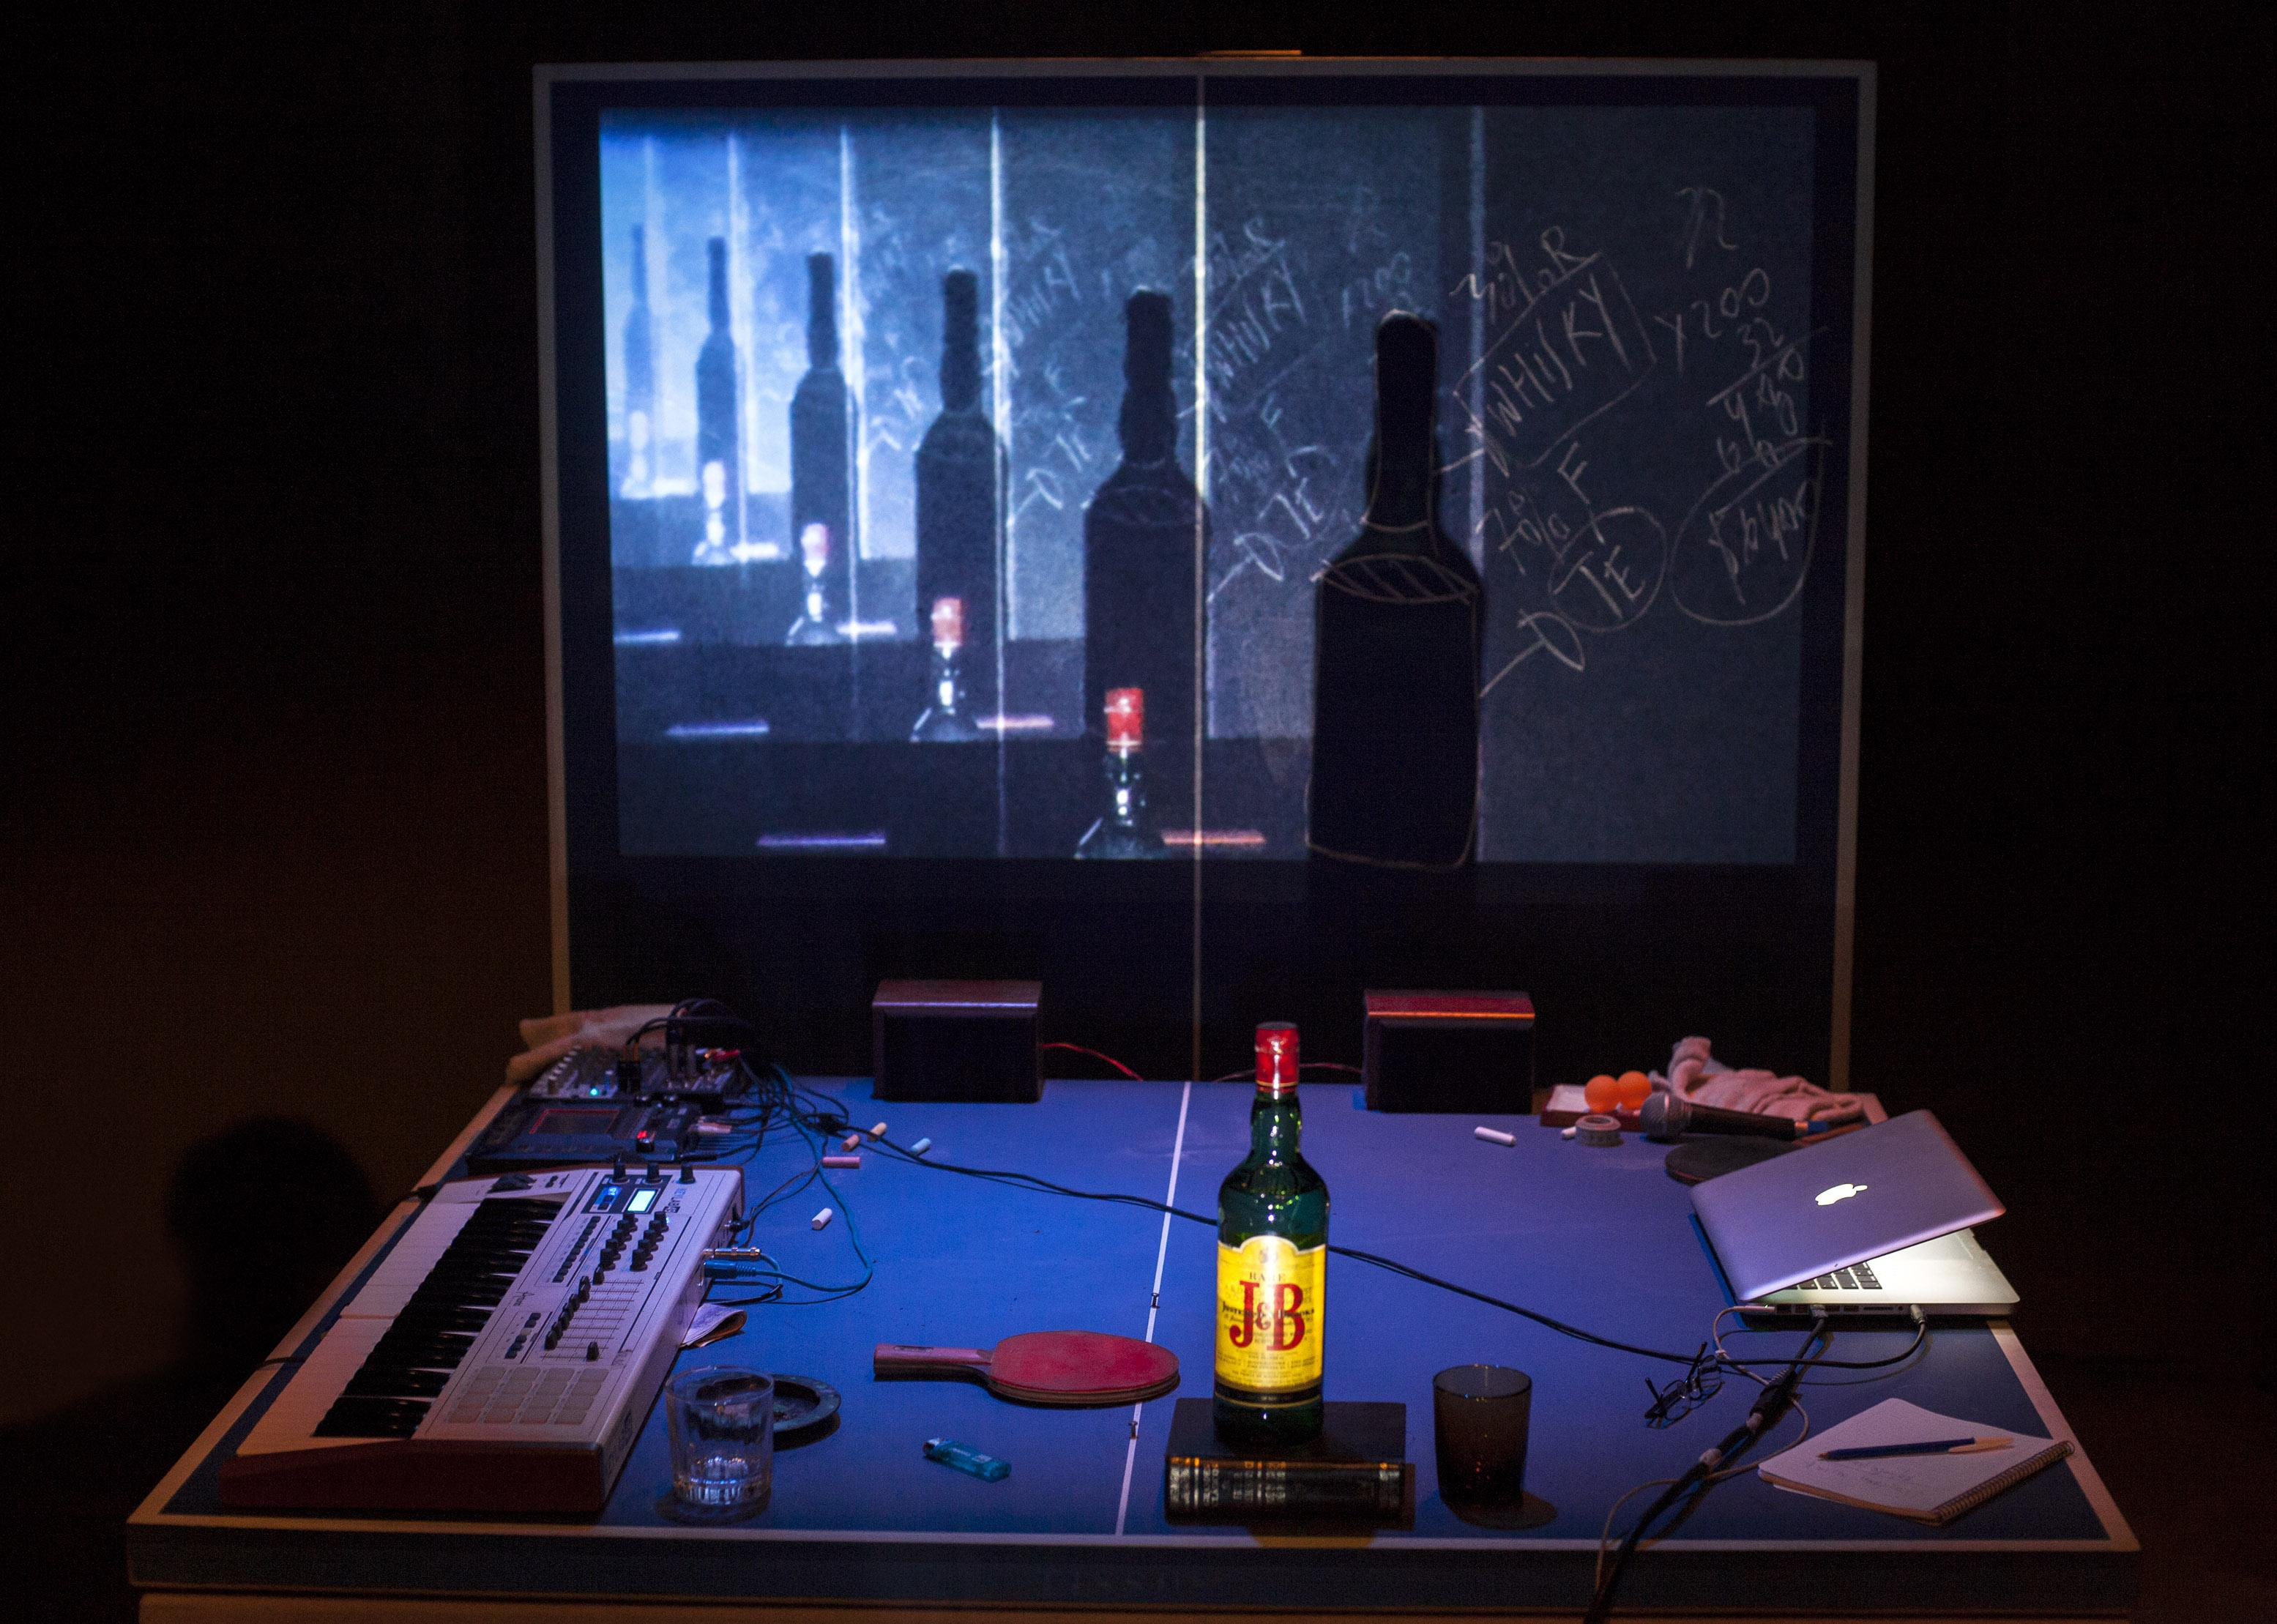 A ping-pong table is littered with a laptop, a musical keyboard, a bottle of whisky, glasses, cables, pens, and paper. The rear half of the table is vertical, showing a projected image of the bottle and its shadow that repeats and recedes into the distance.